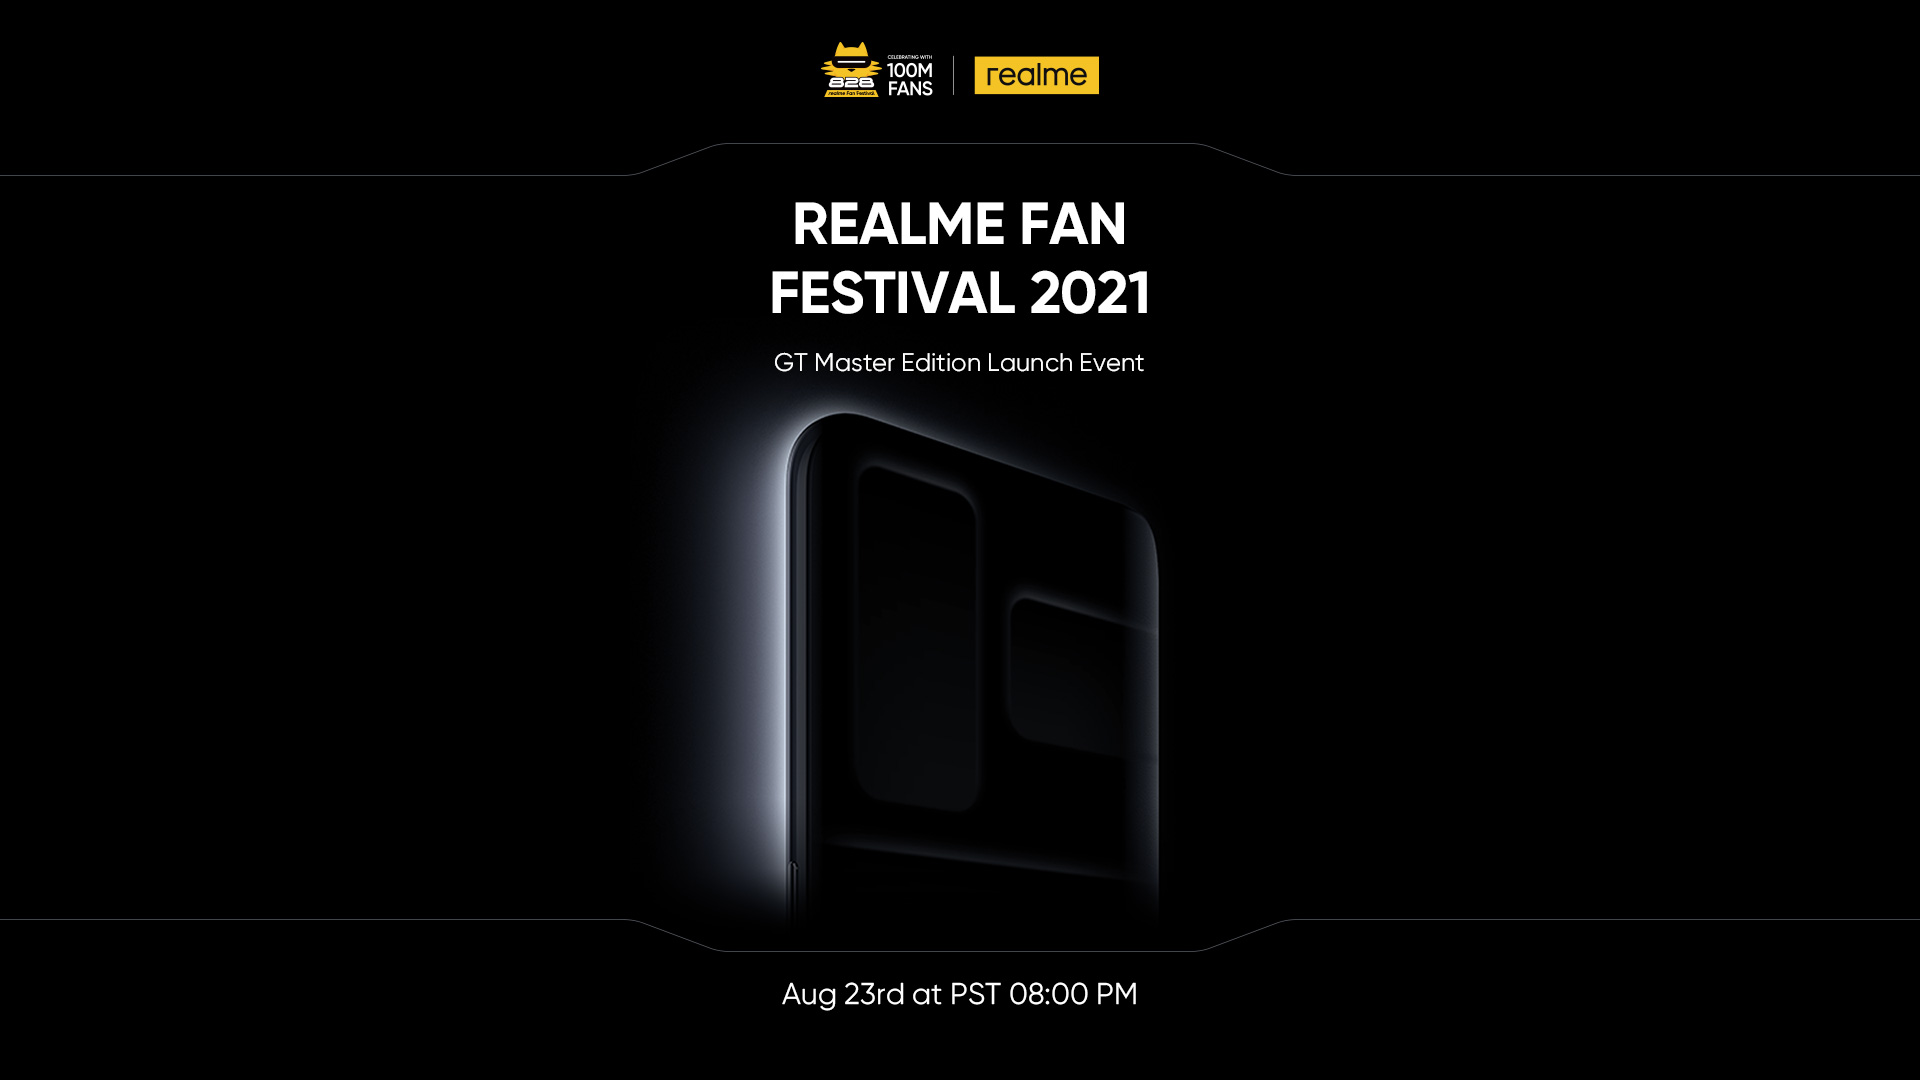 realme to Launch 100 Million Sales Milestone Product GT Master Edition Series and Other Product Lines on August 23